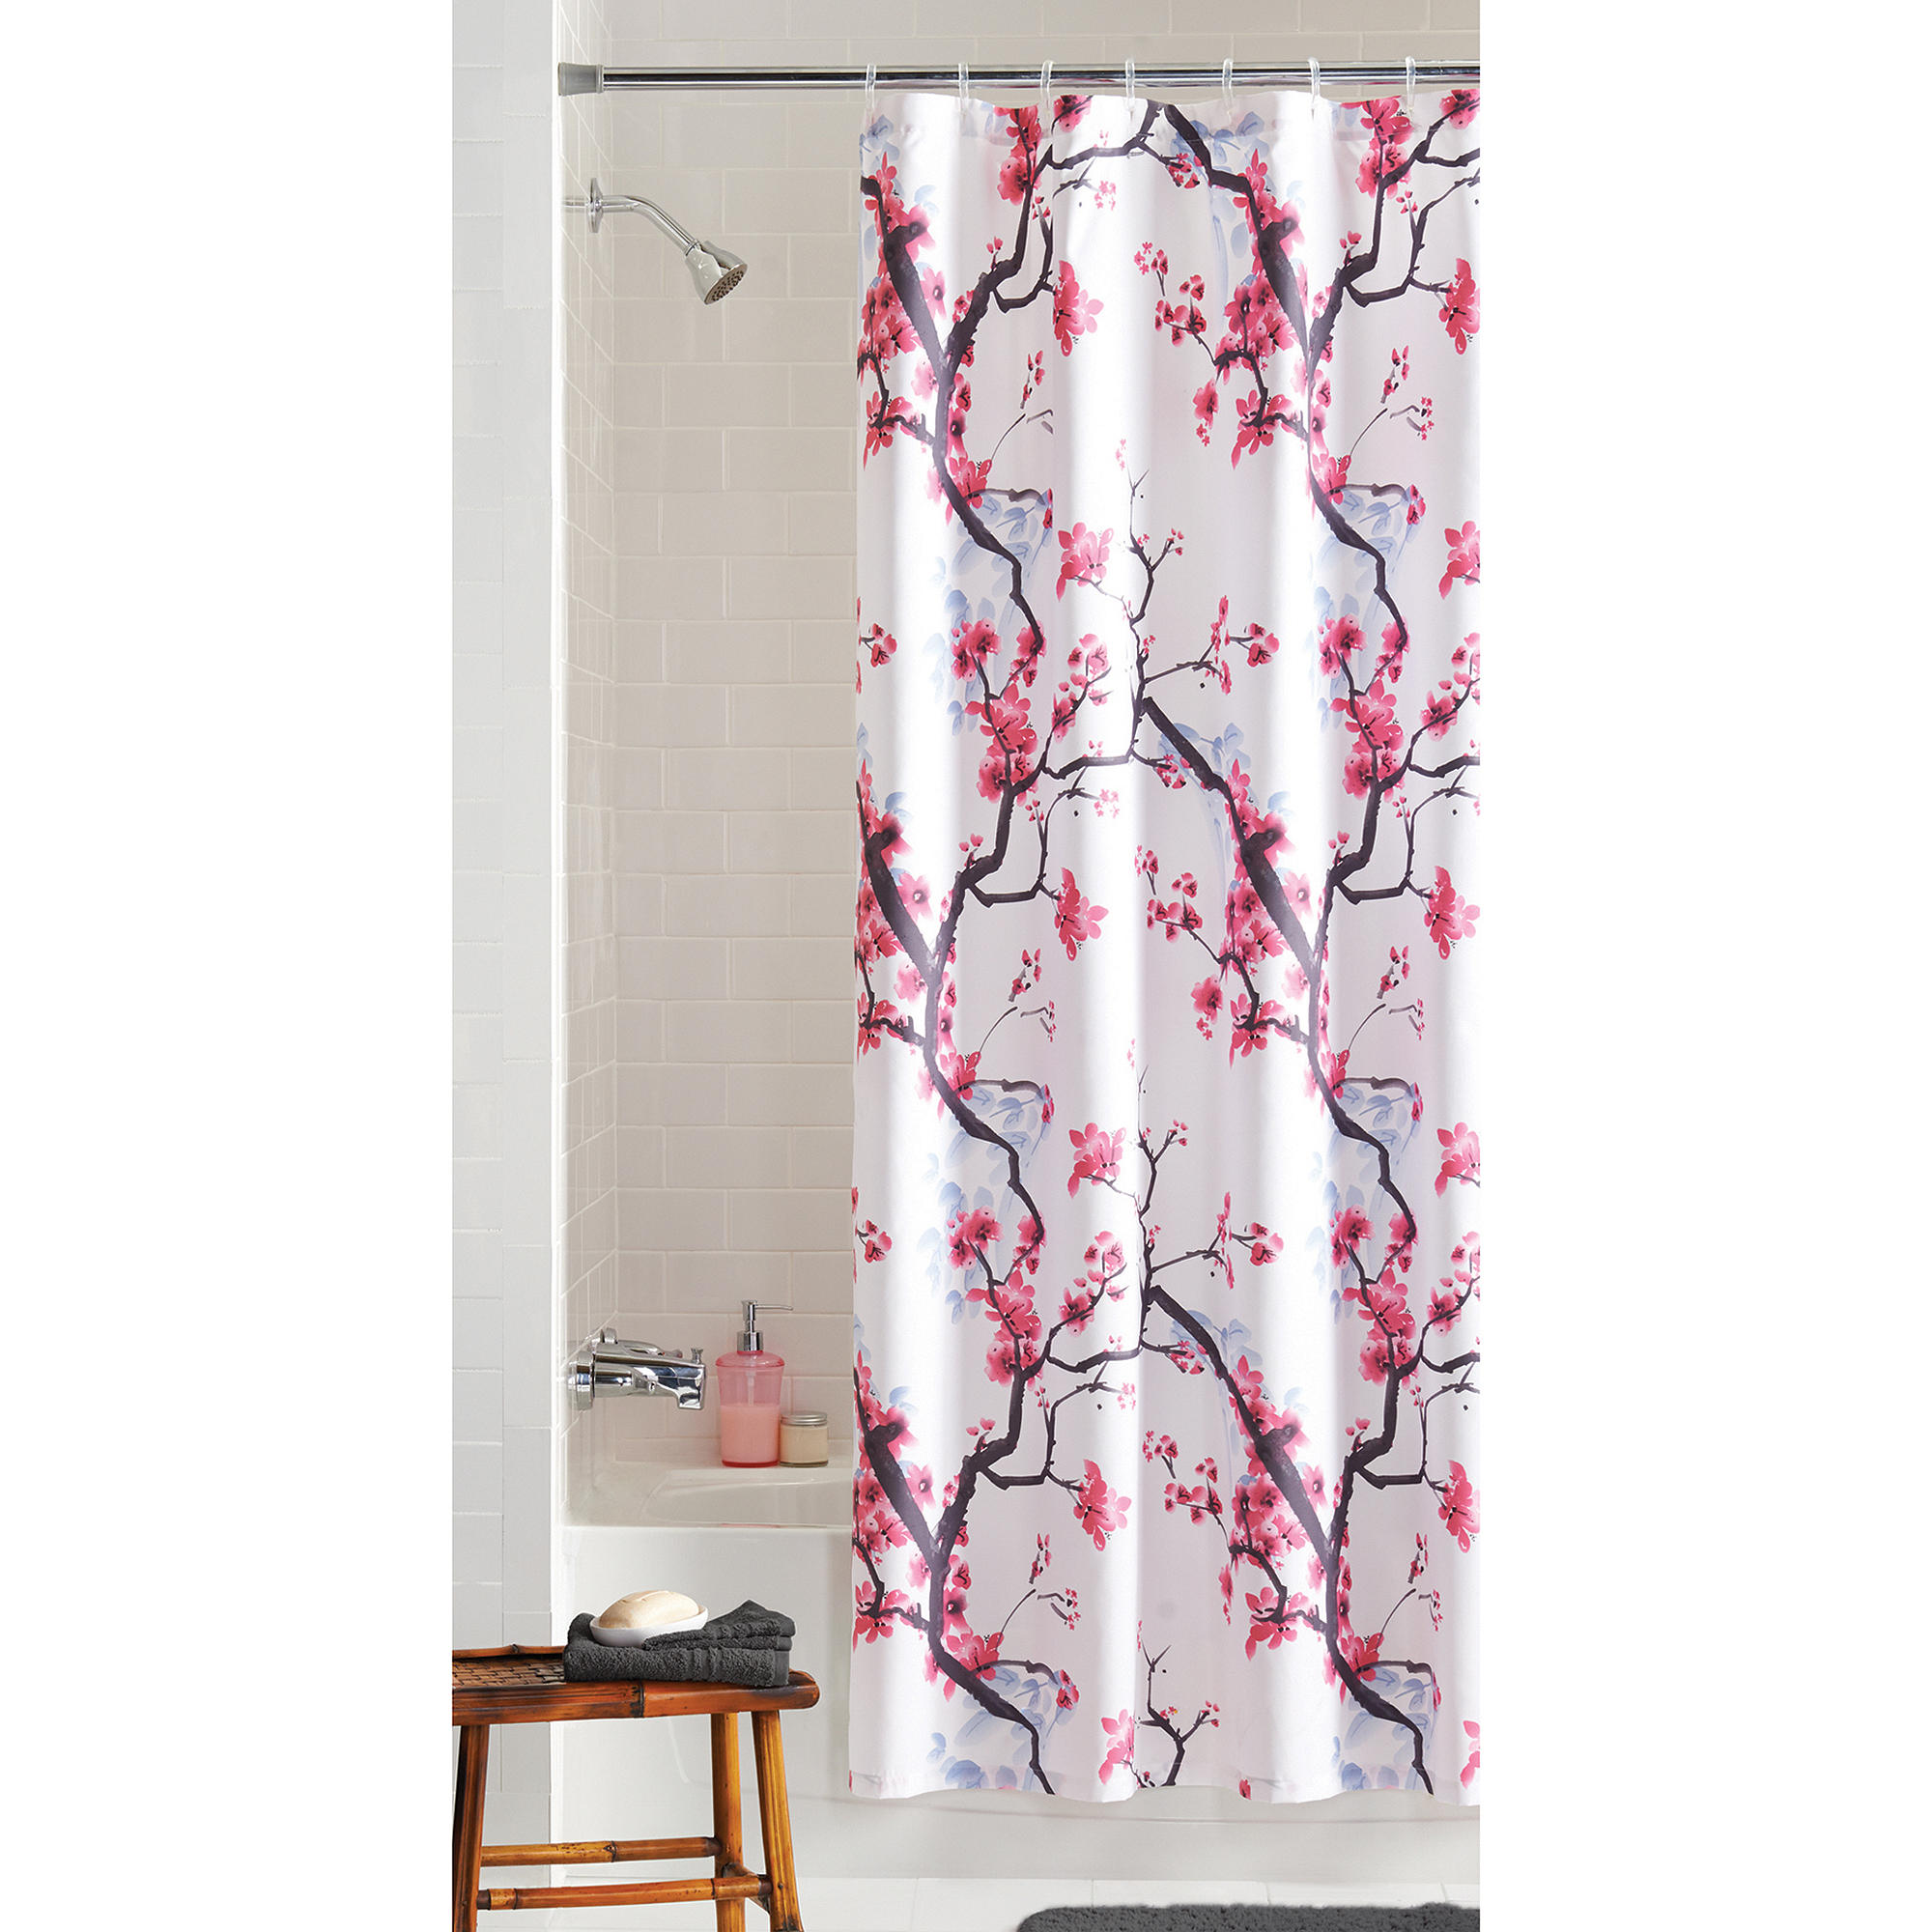 Mainstays Pink Blossom Fabric Shower Curtain   Walmart.com